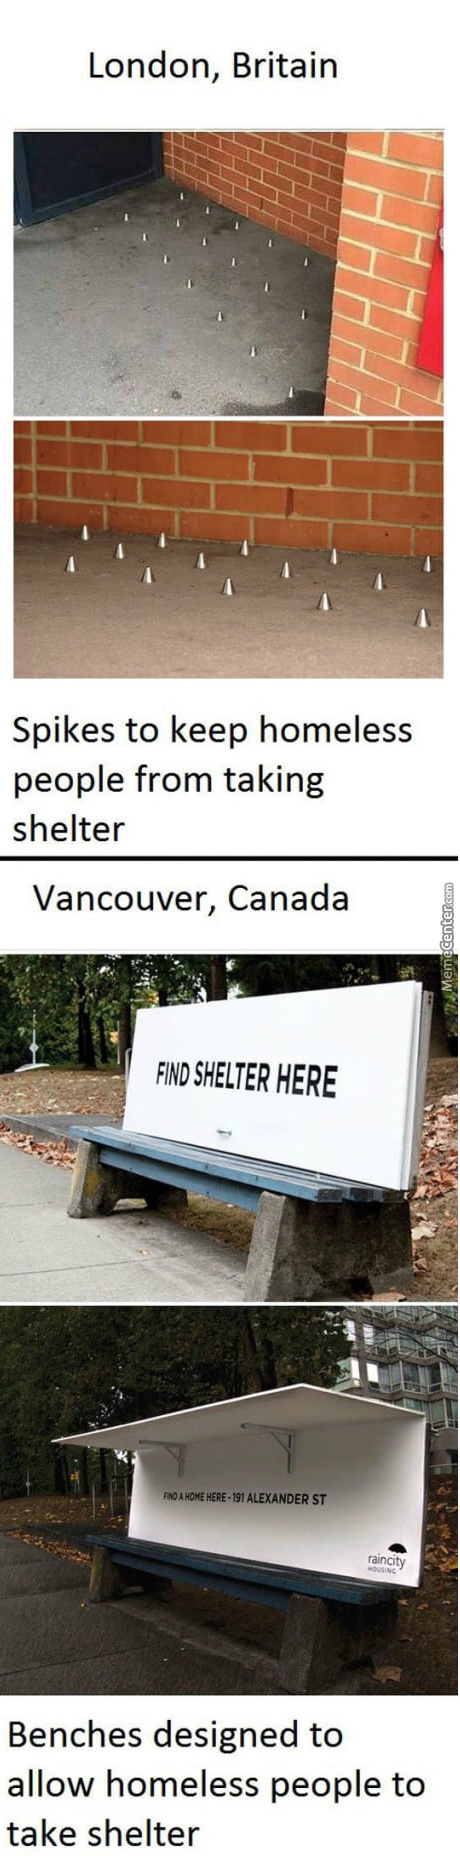 So Fuck You, Homeless British People